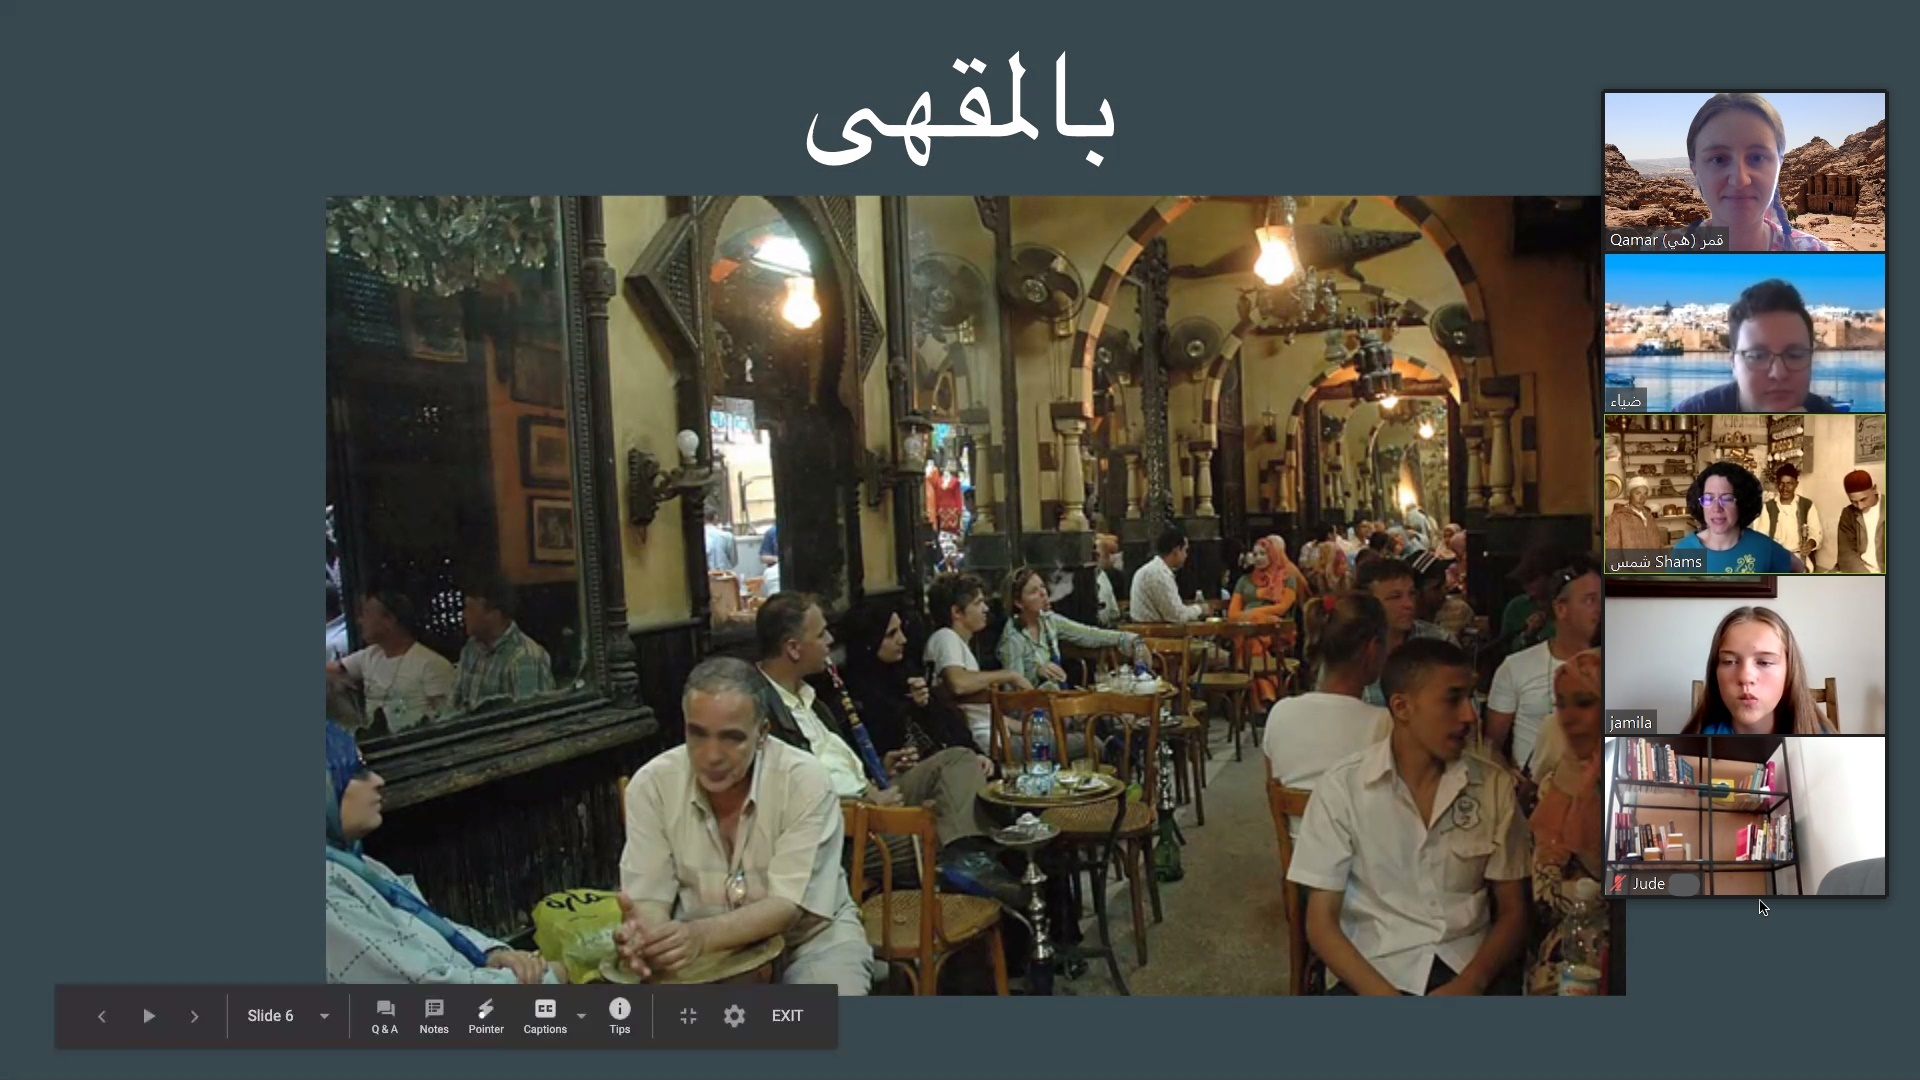 People sitting at a huge café in Egypt, smoking shisha, drinking coffee, and chatting.